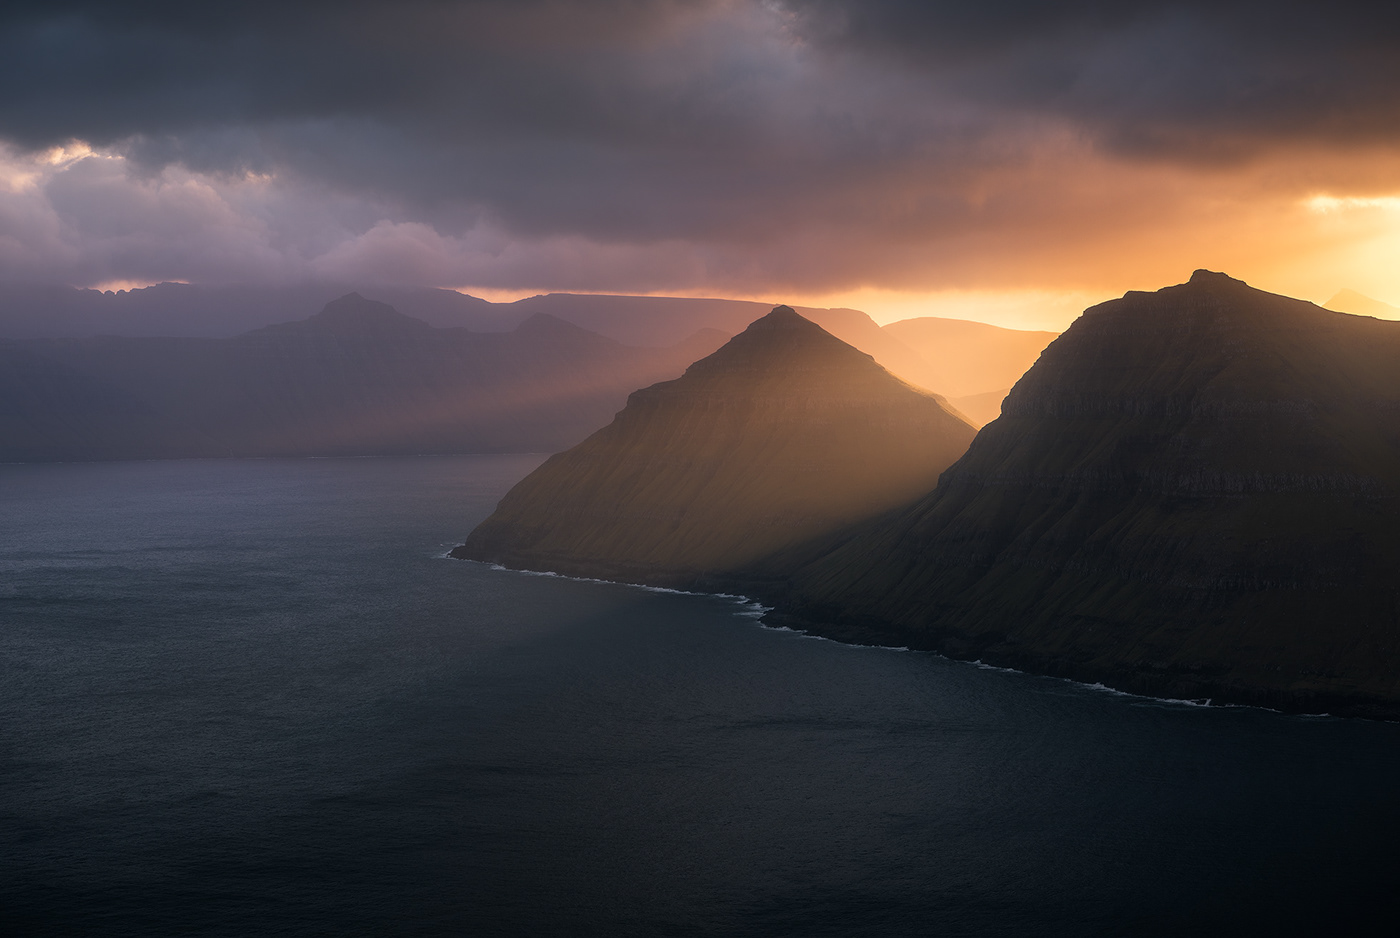 """Chasing Elements in The Faroe Islands"" by Christian Hoiberg is licensed under CC BY-NC-ND 4.0"